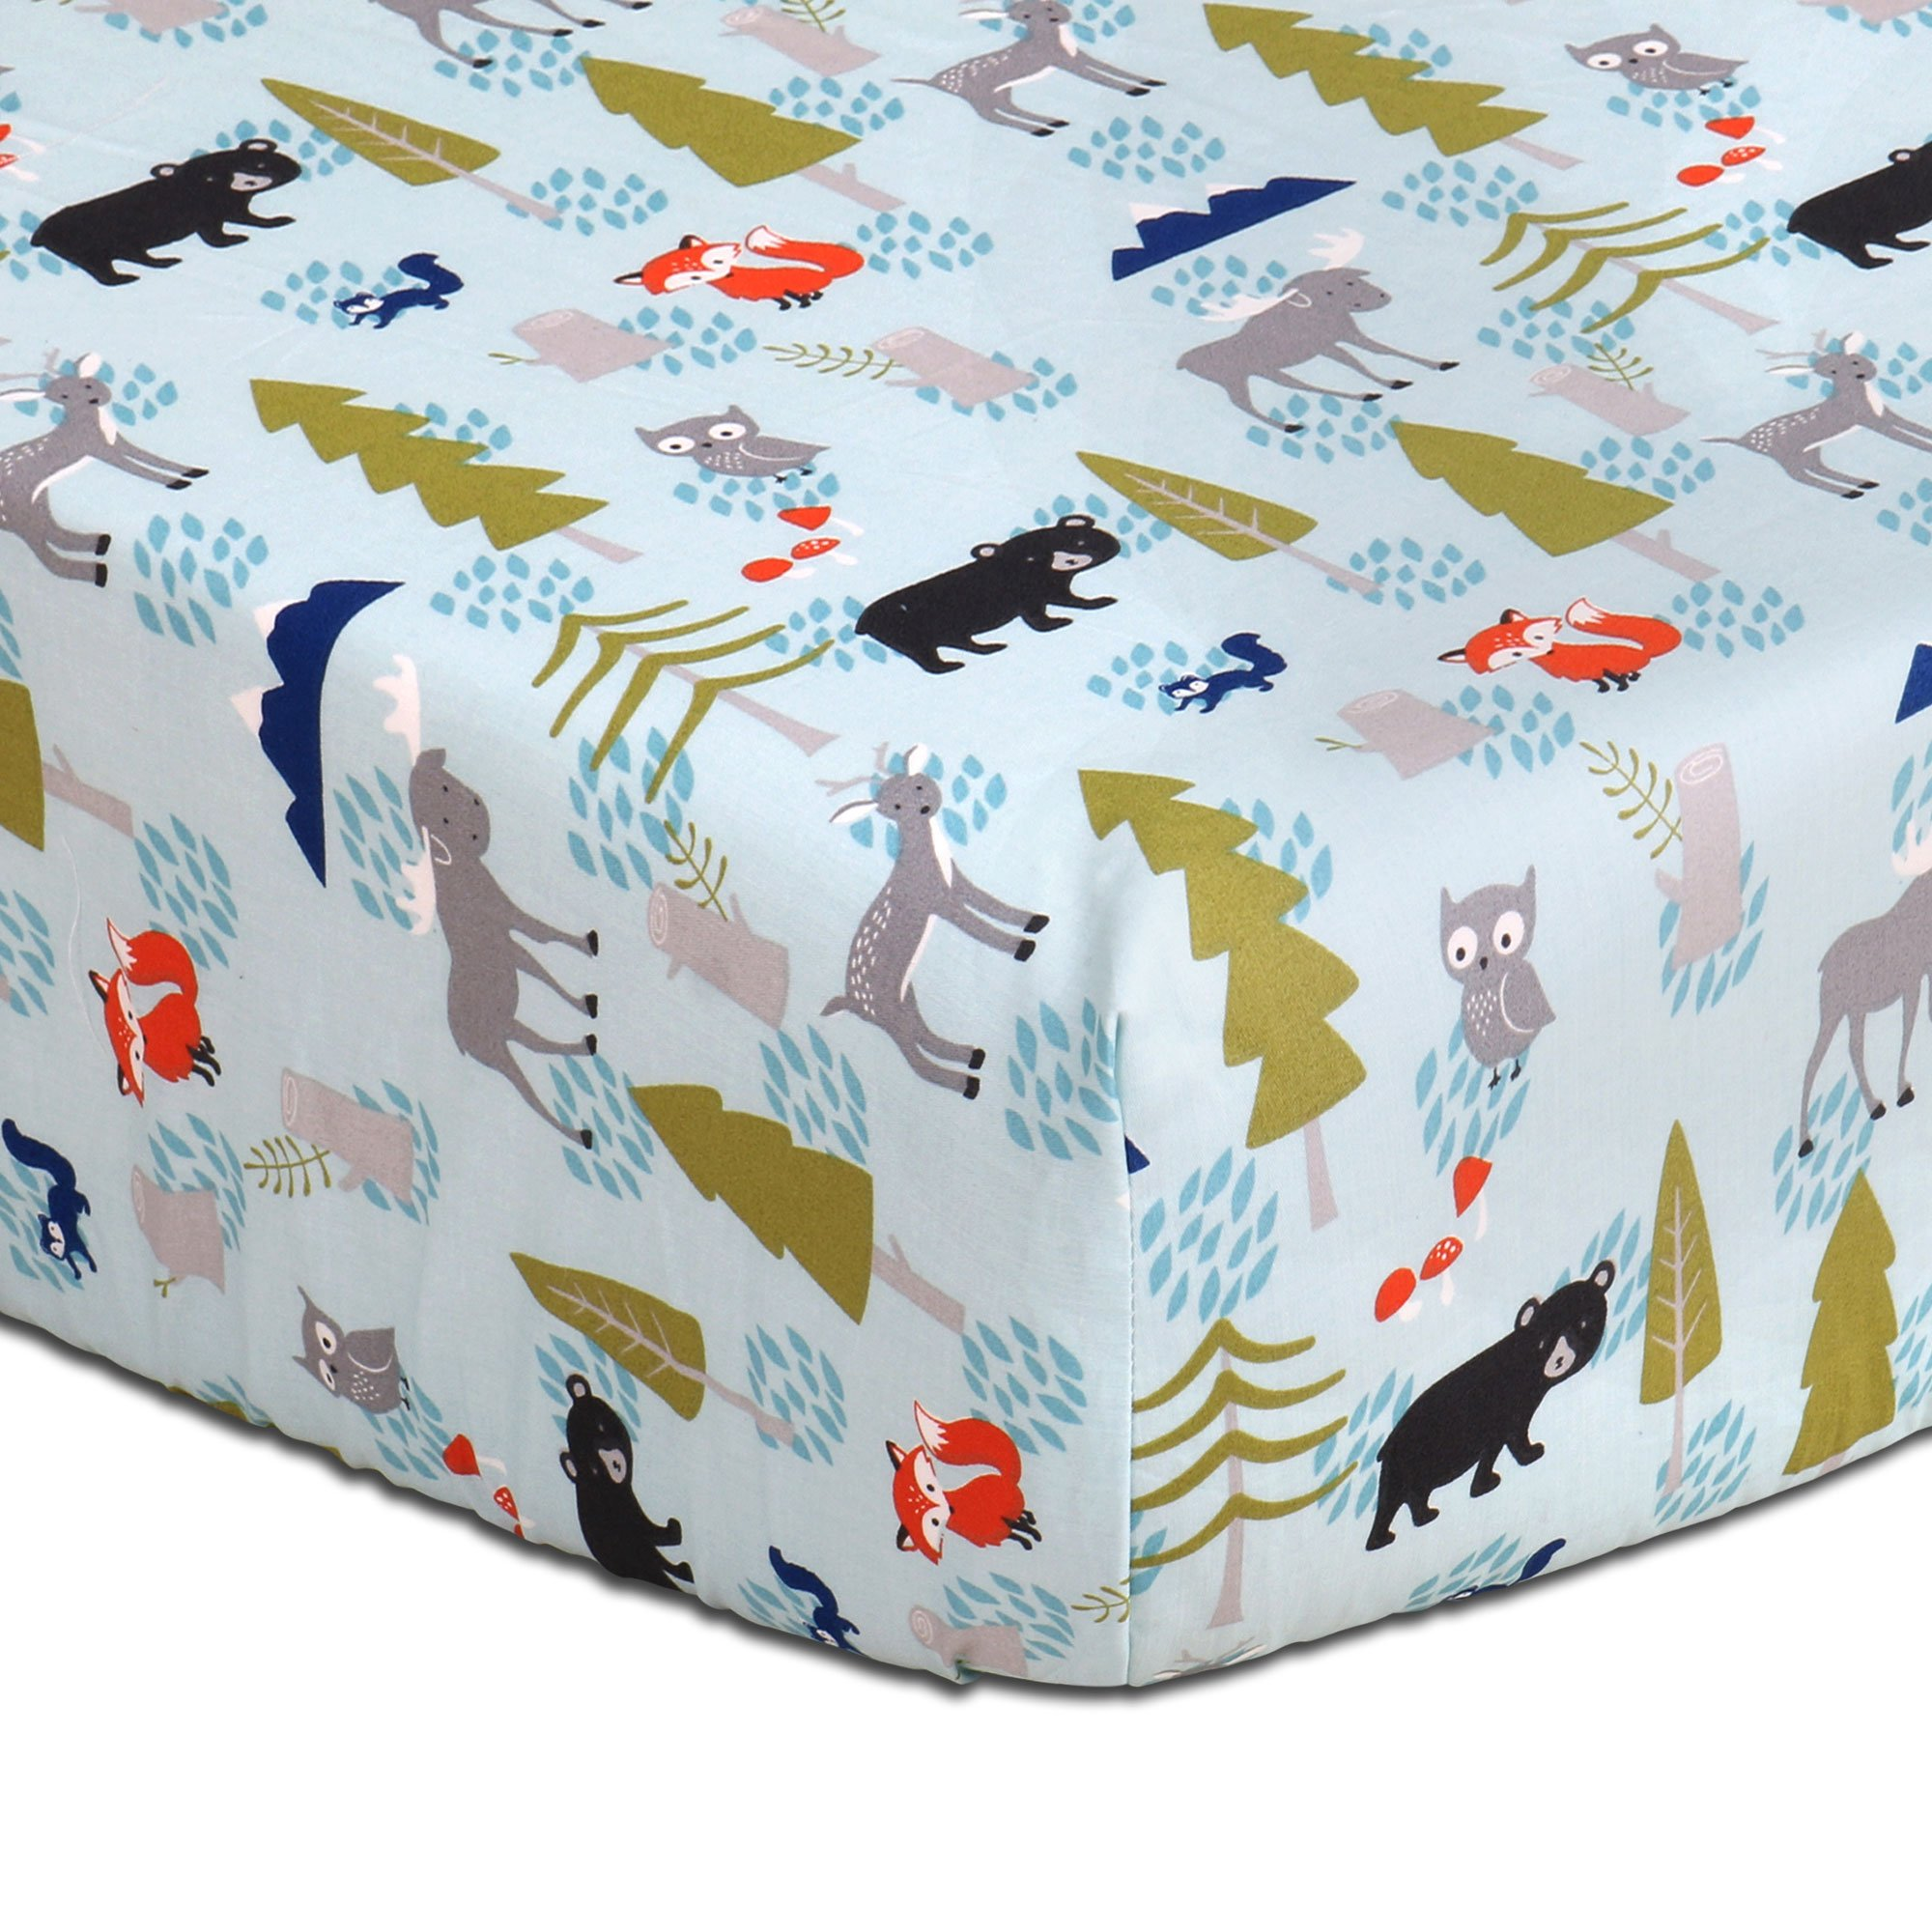 Woodland Dreams Cotton Baby Fitted Crib Sheet by The Peanut Shell